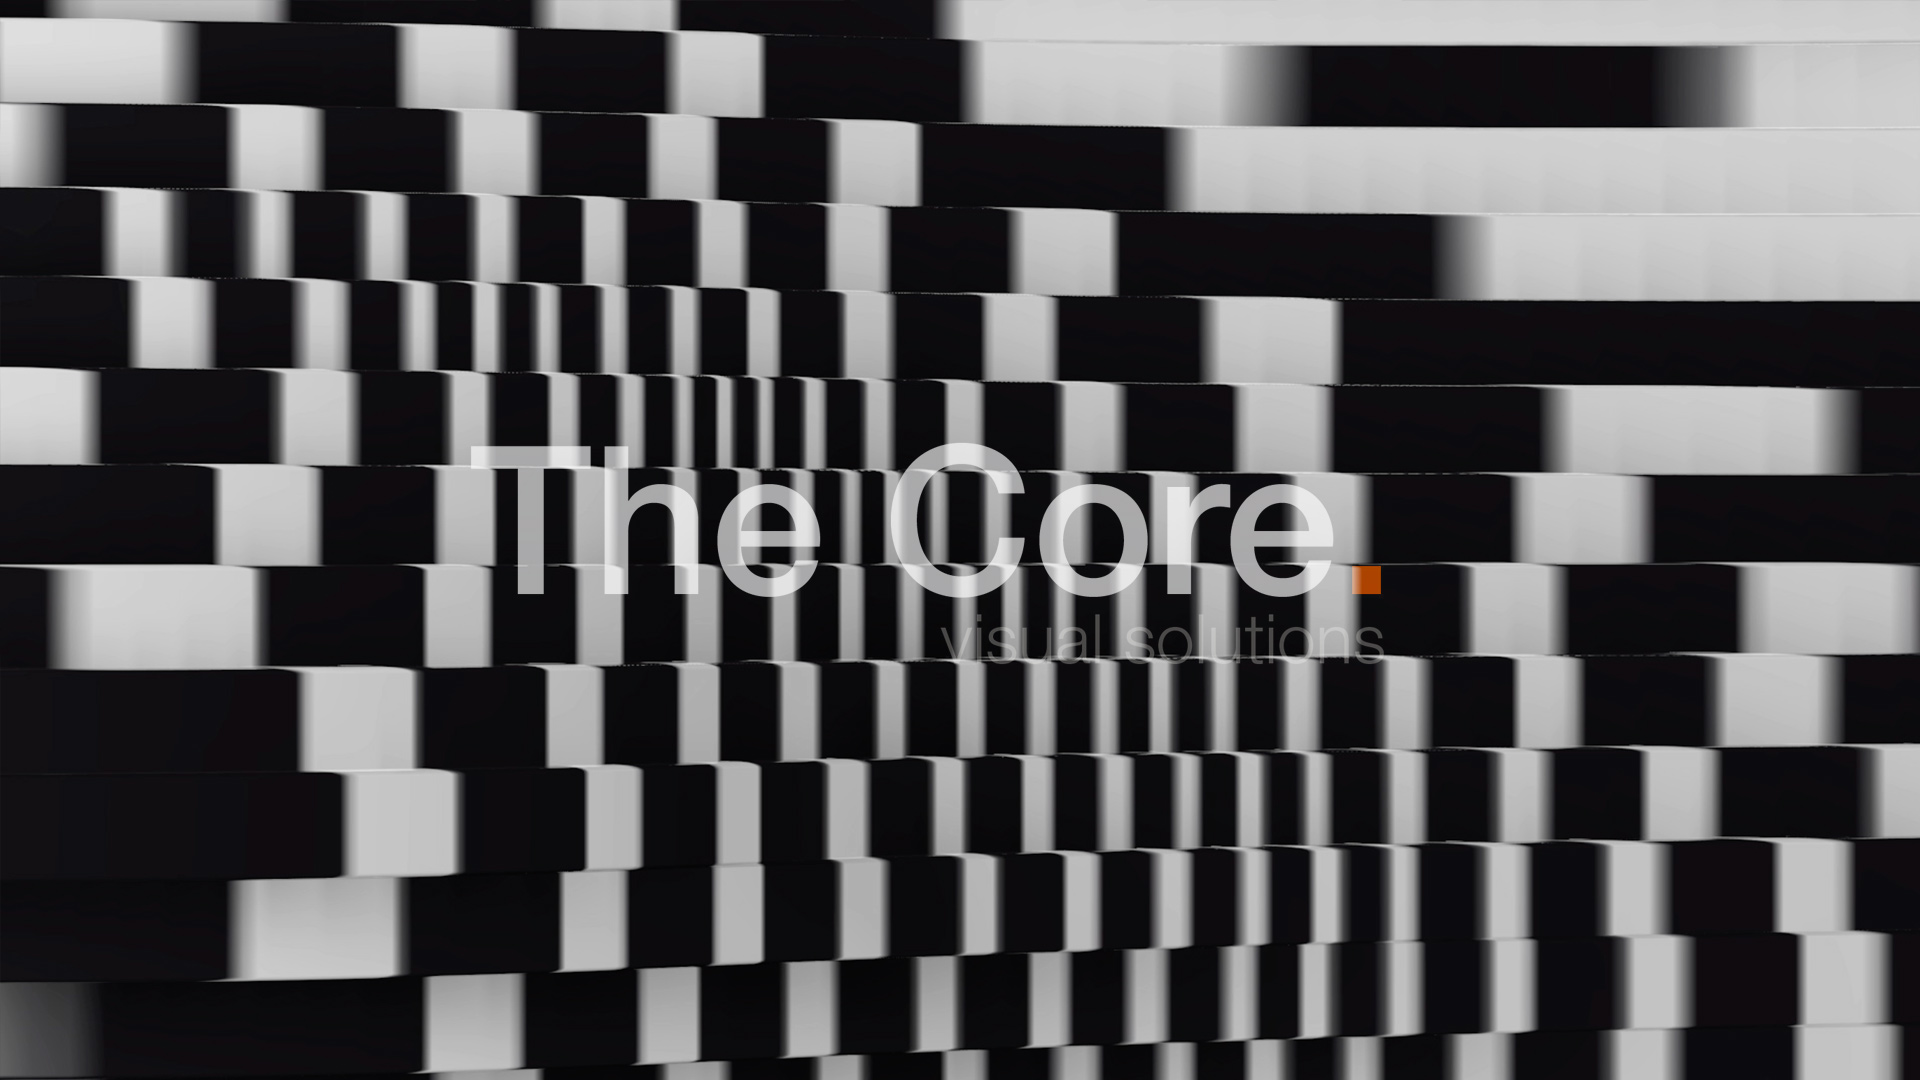 00208-SLICE-OPART-4-STILL-by-The-Core